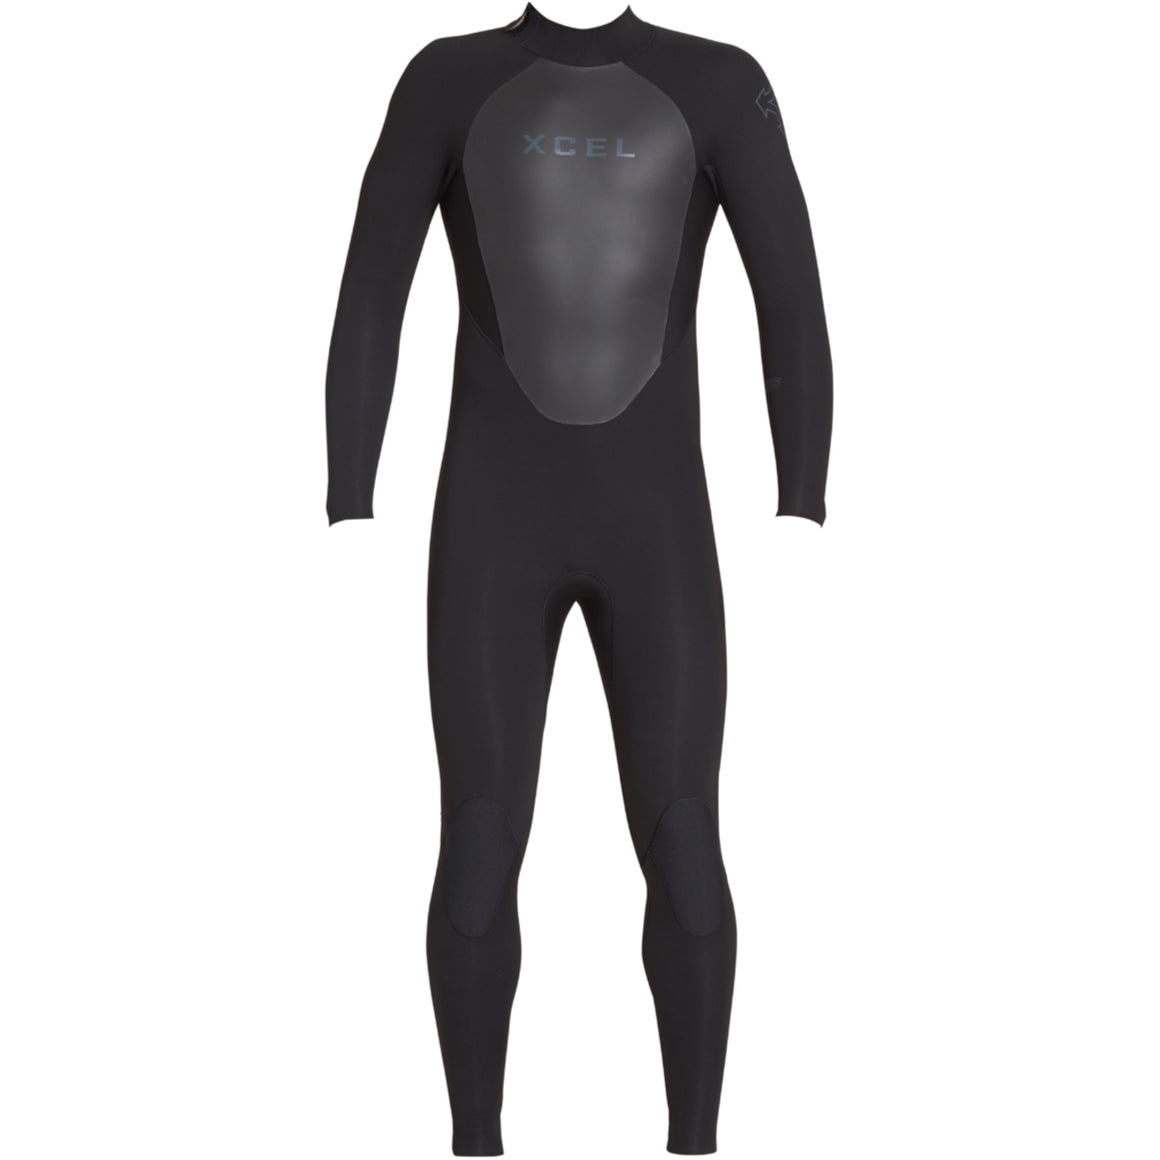 4/3 Men's XCEL AXIS FULLSUIT back zip - Surf Ontario